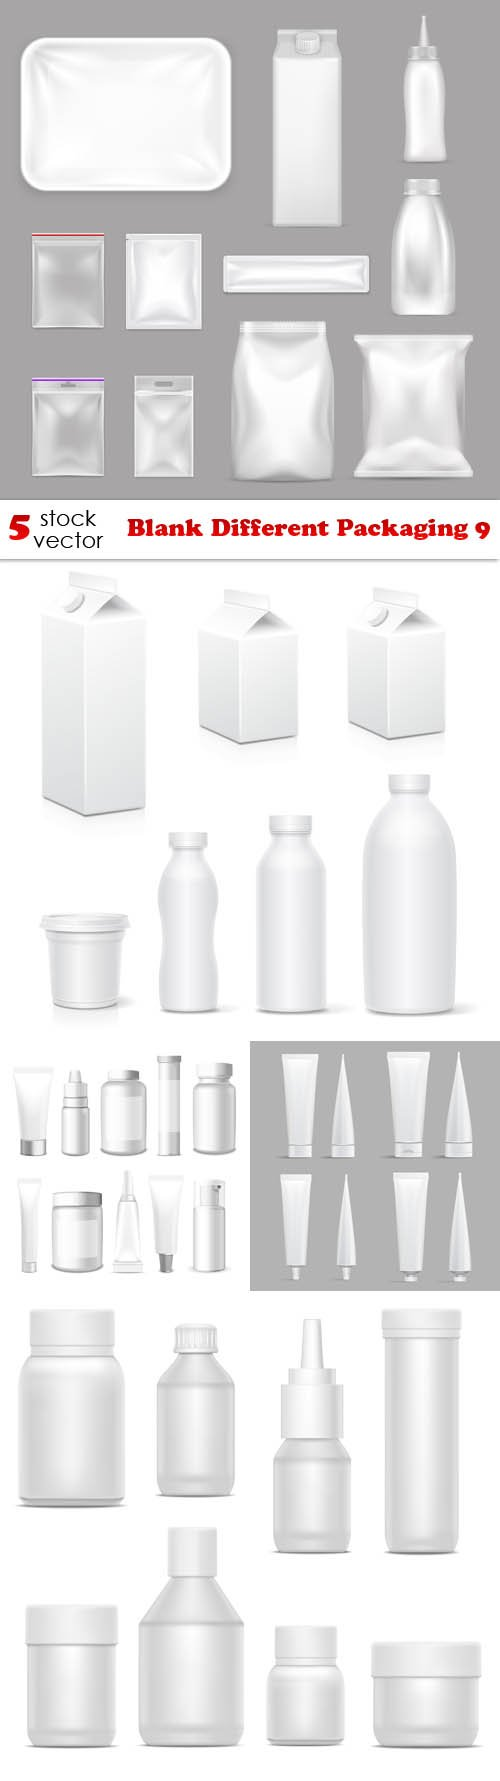 Vectors - Blank Different Packaging 9